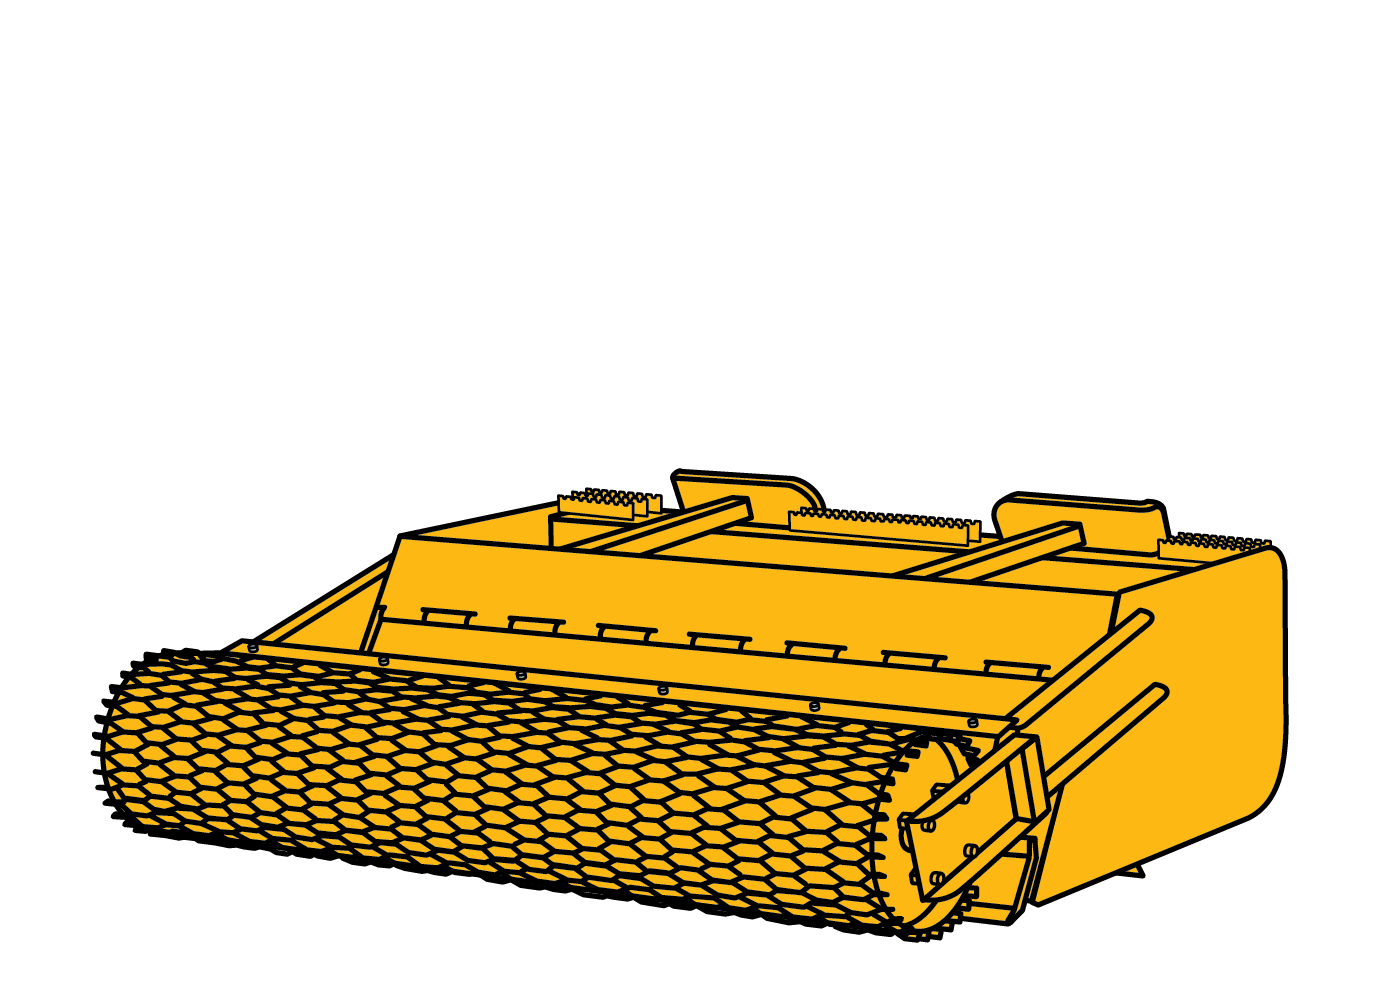 ROLLER LEVEL illustration